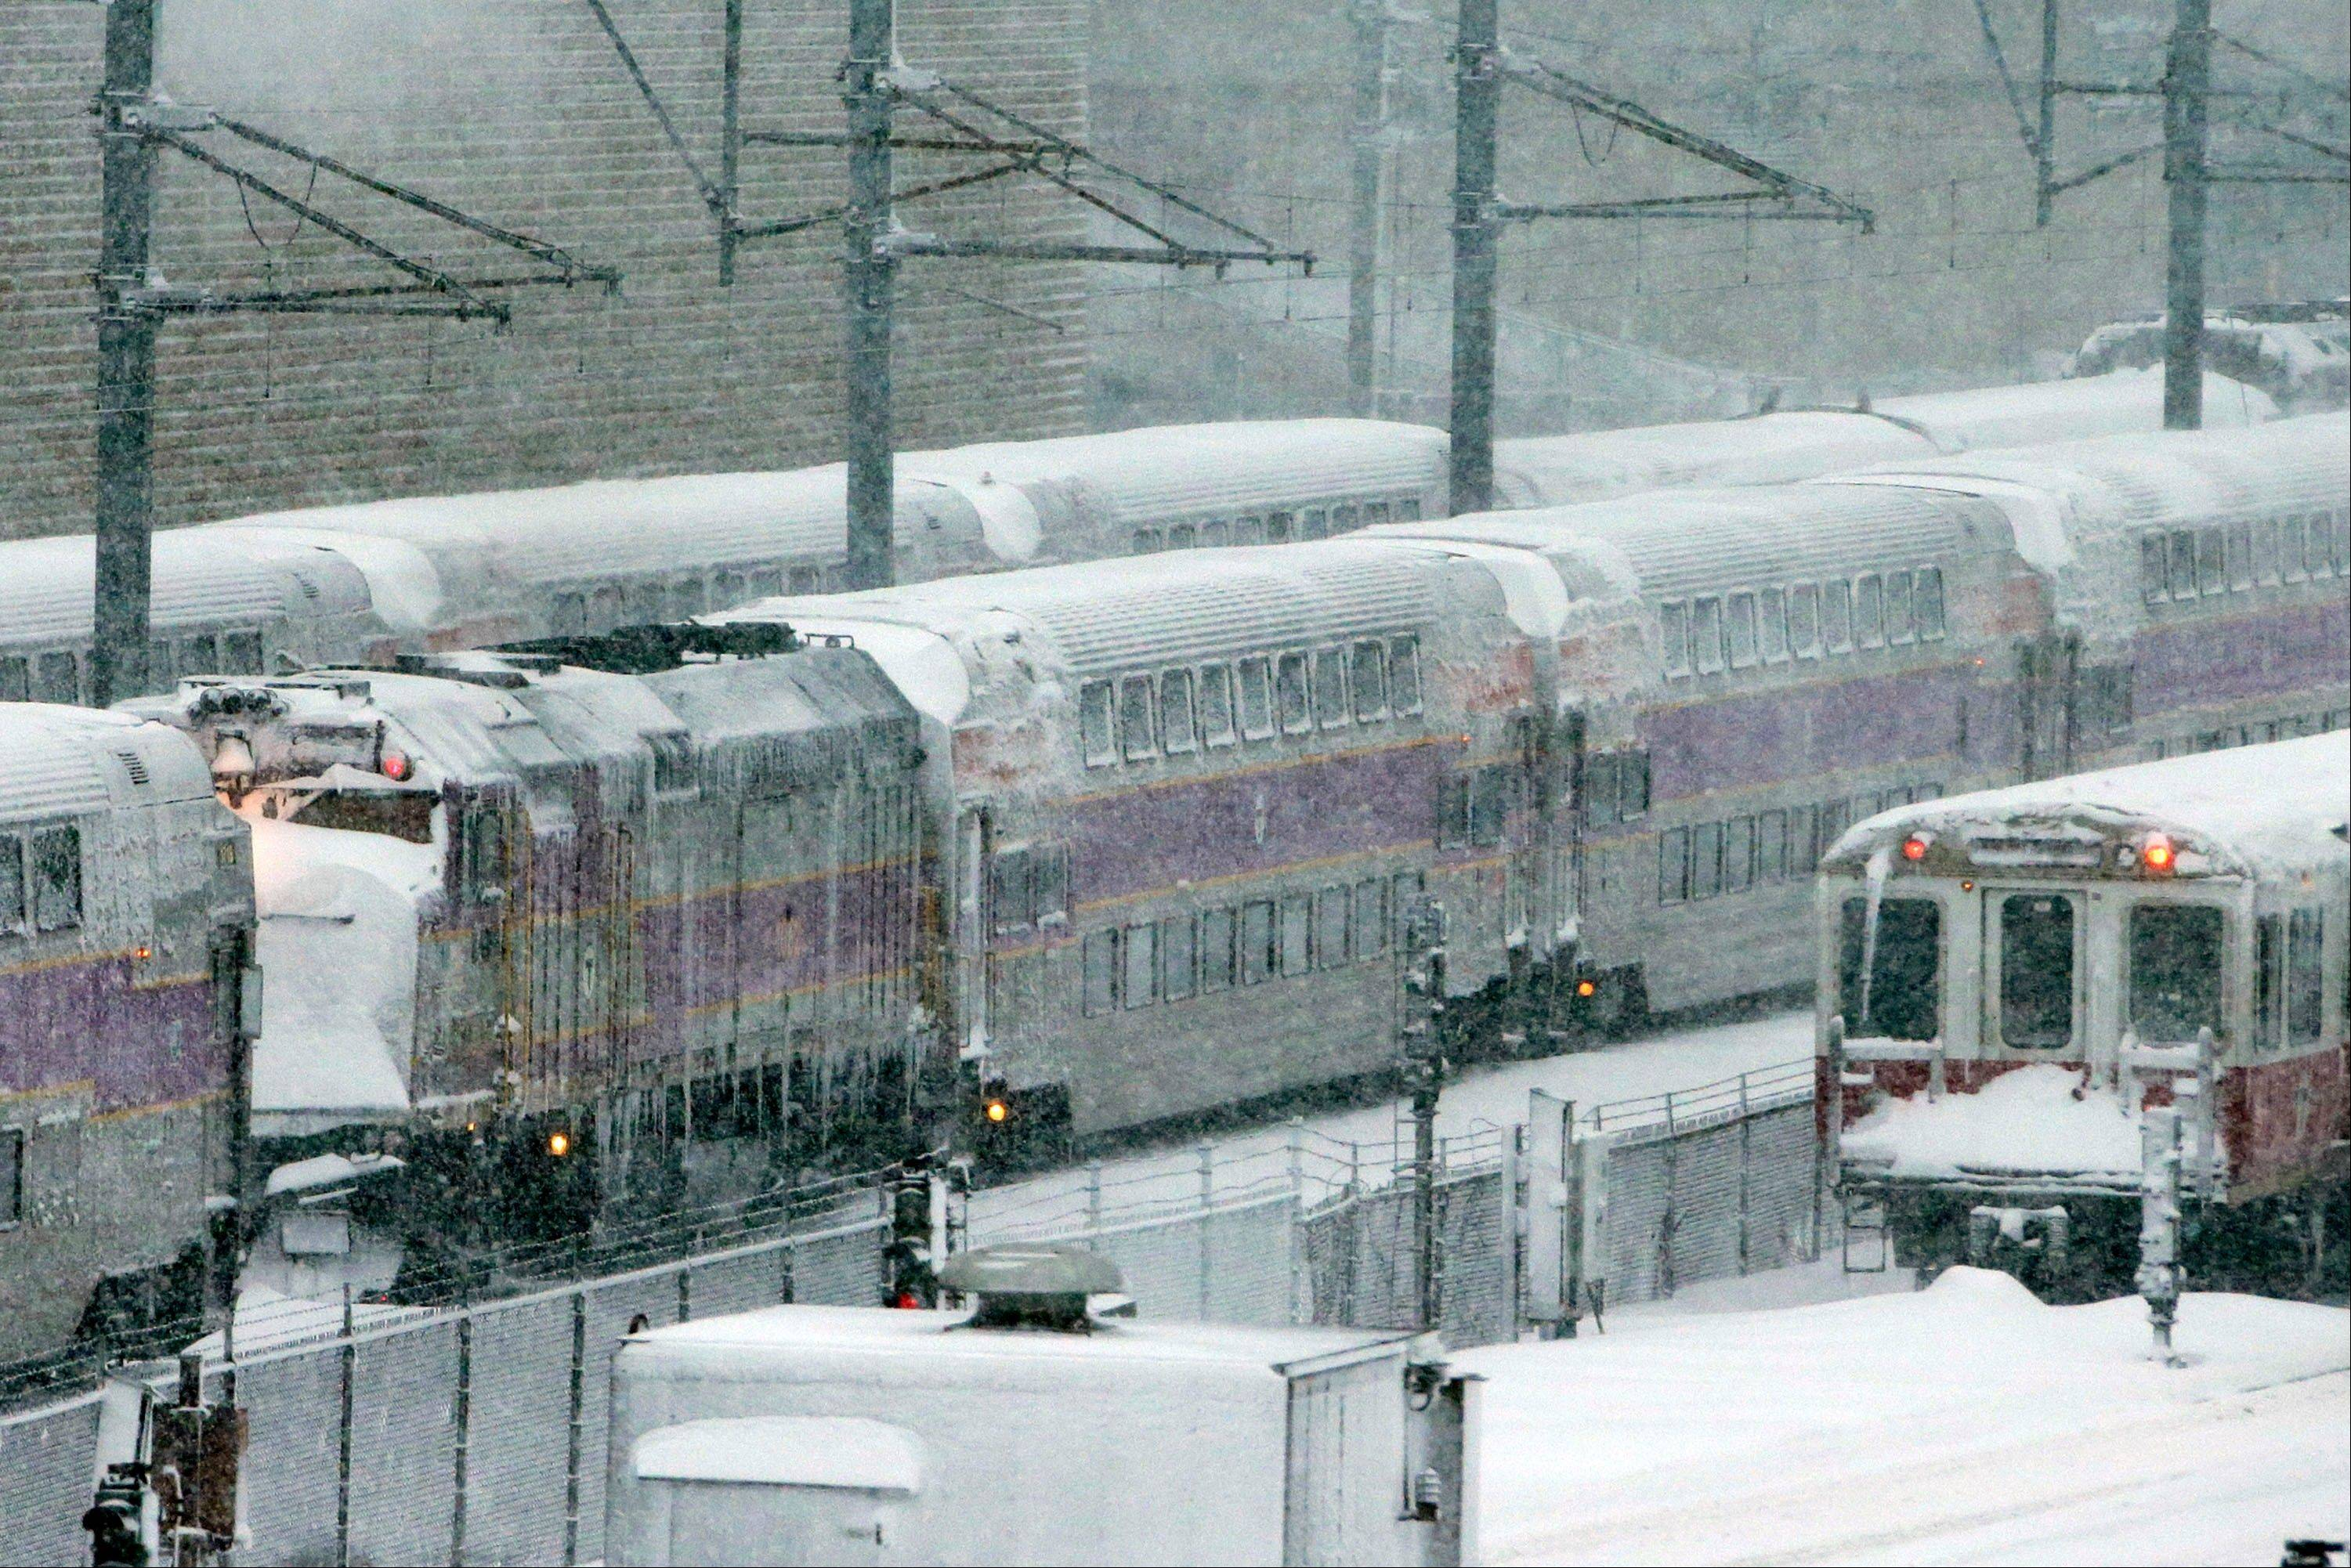 Massachusetts Bay Transportation Authority trains sit idle early Saturday, Feb. 9, 2013 in Boston due to high winds and the nearly 2 feet of snow that fell in the area overnight.